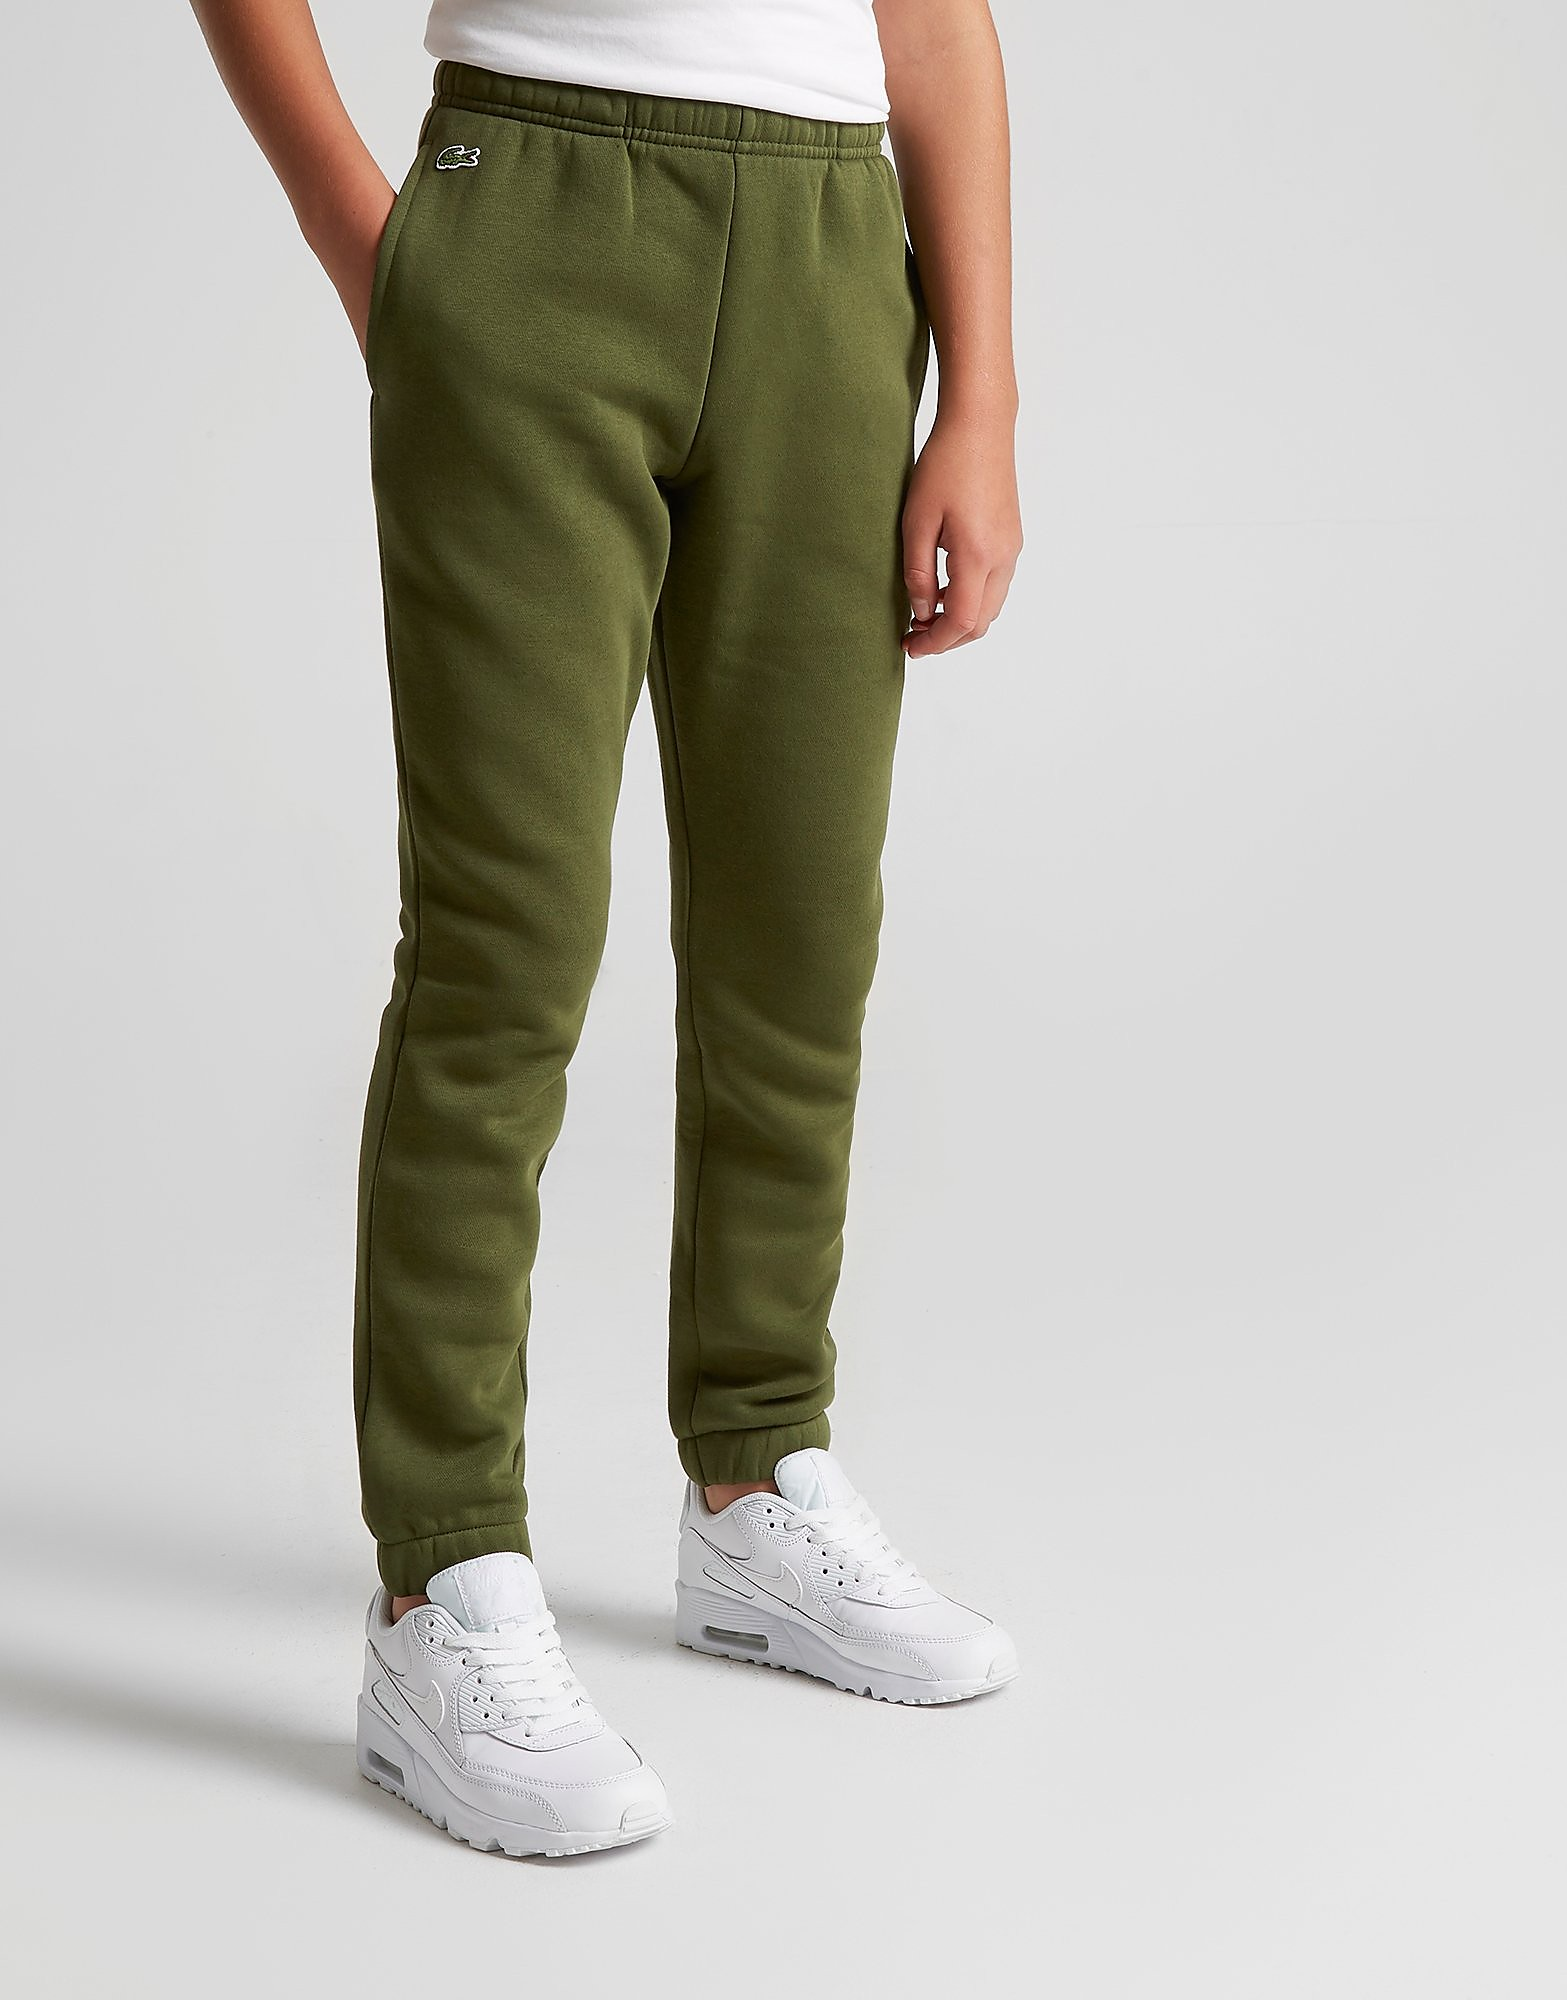 Lacoste Small Logo Track Pants Junior - Groen - Kind